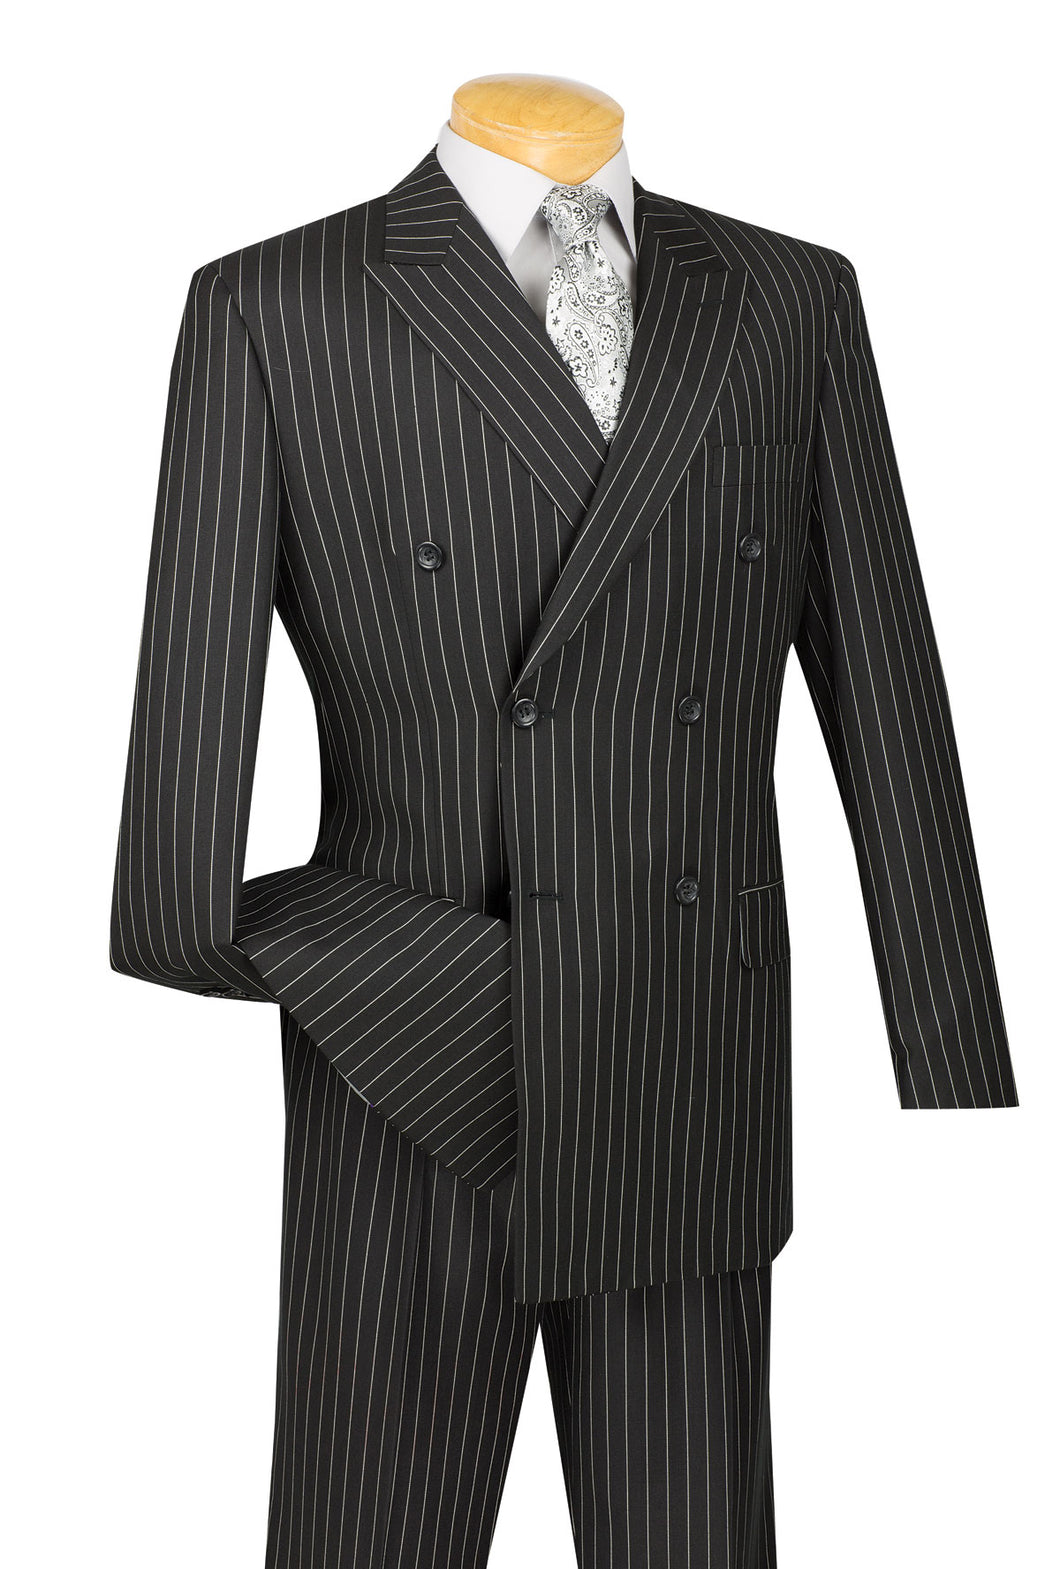 Men's Double Breasted Suit Black Stripe 1940s DSS-4